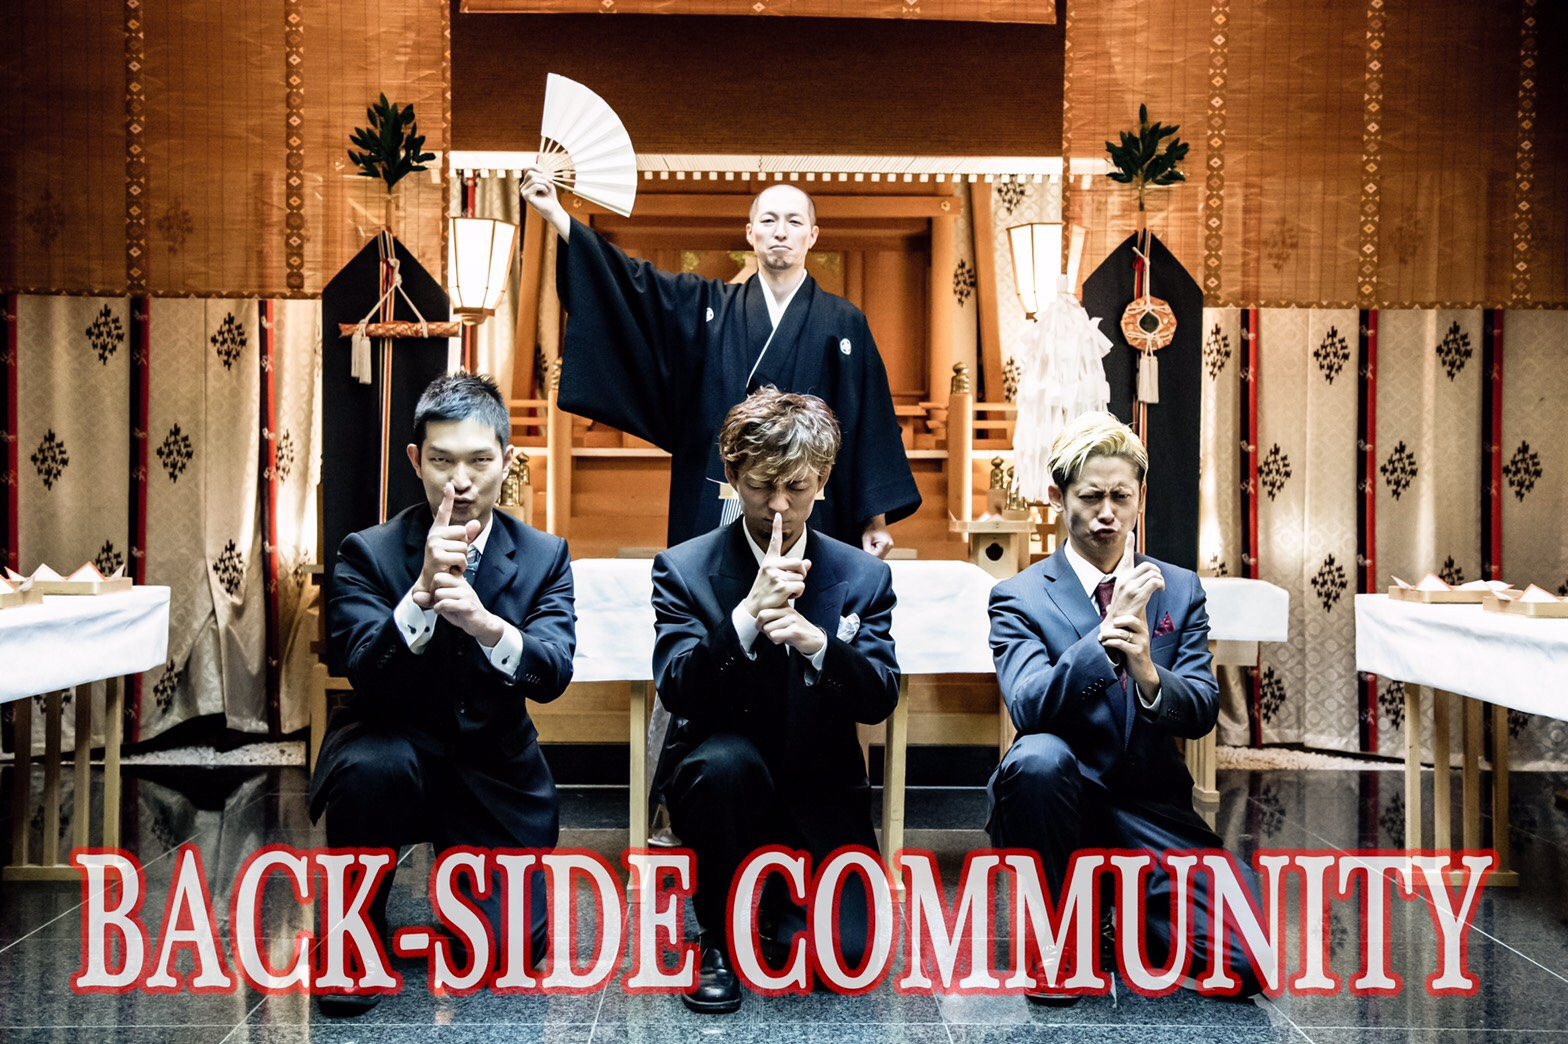 BACK-SIDE COMMUNITY